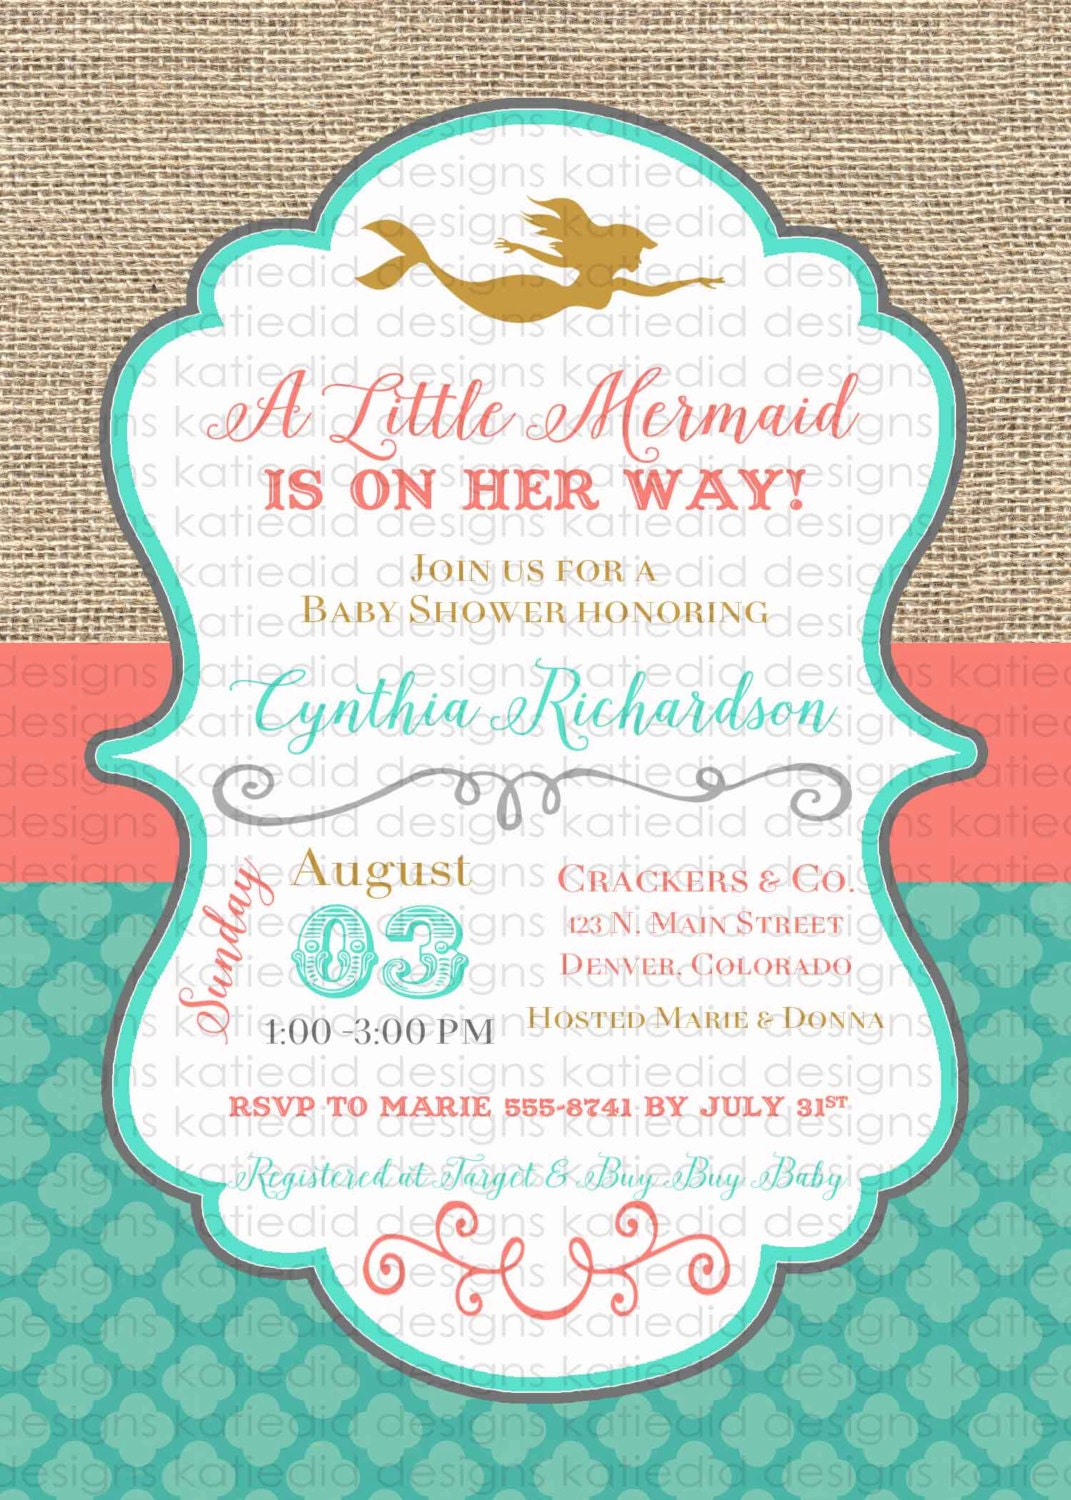 mermaid baby shower invitation bridal shower under the sea wedding hen party high tea rehearsal engagement invitation